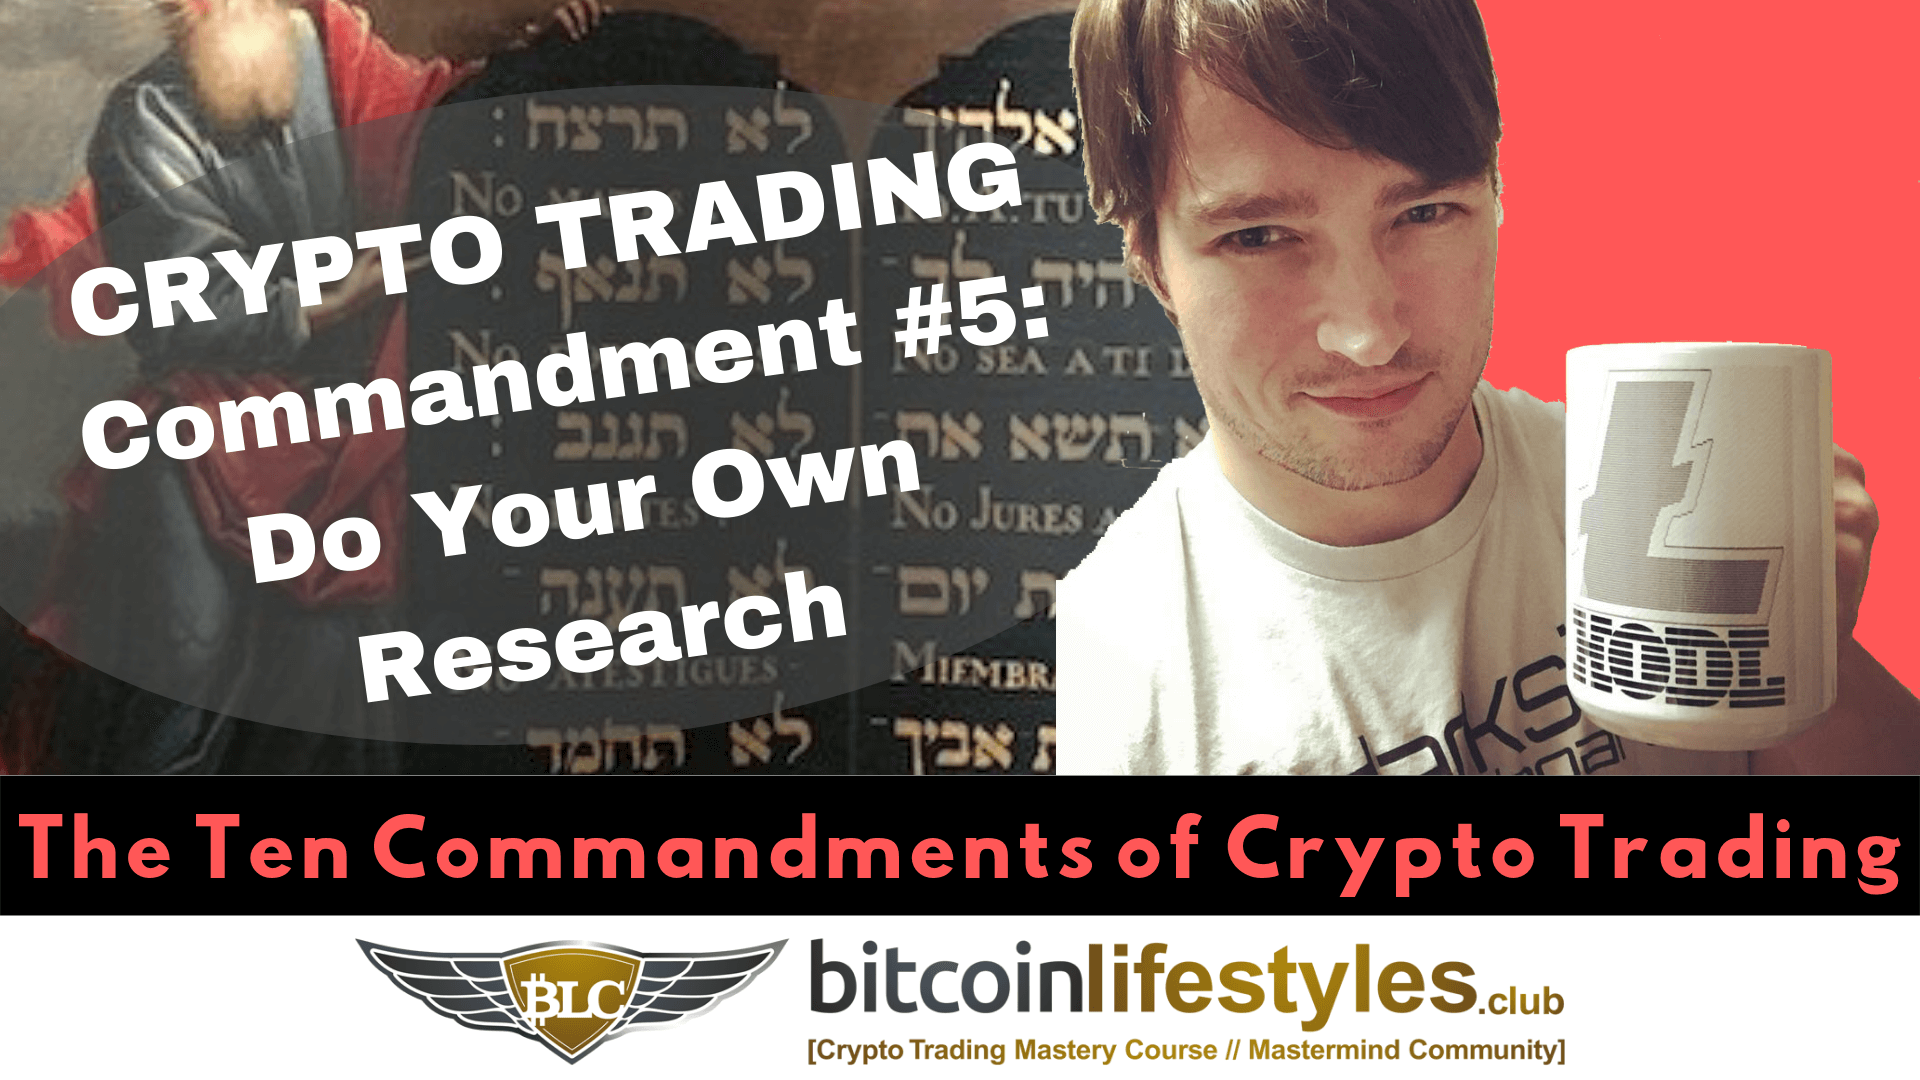 5th Crypto Trading Commandment: Thou Shalt Do Your Own Research